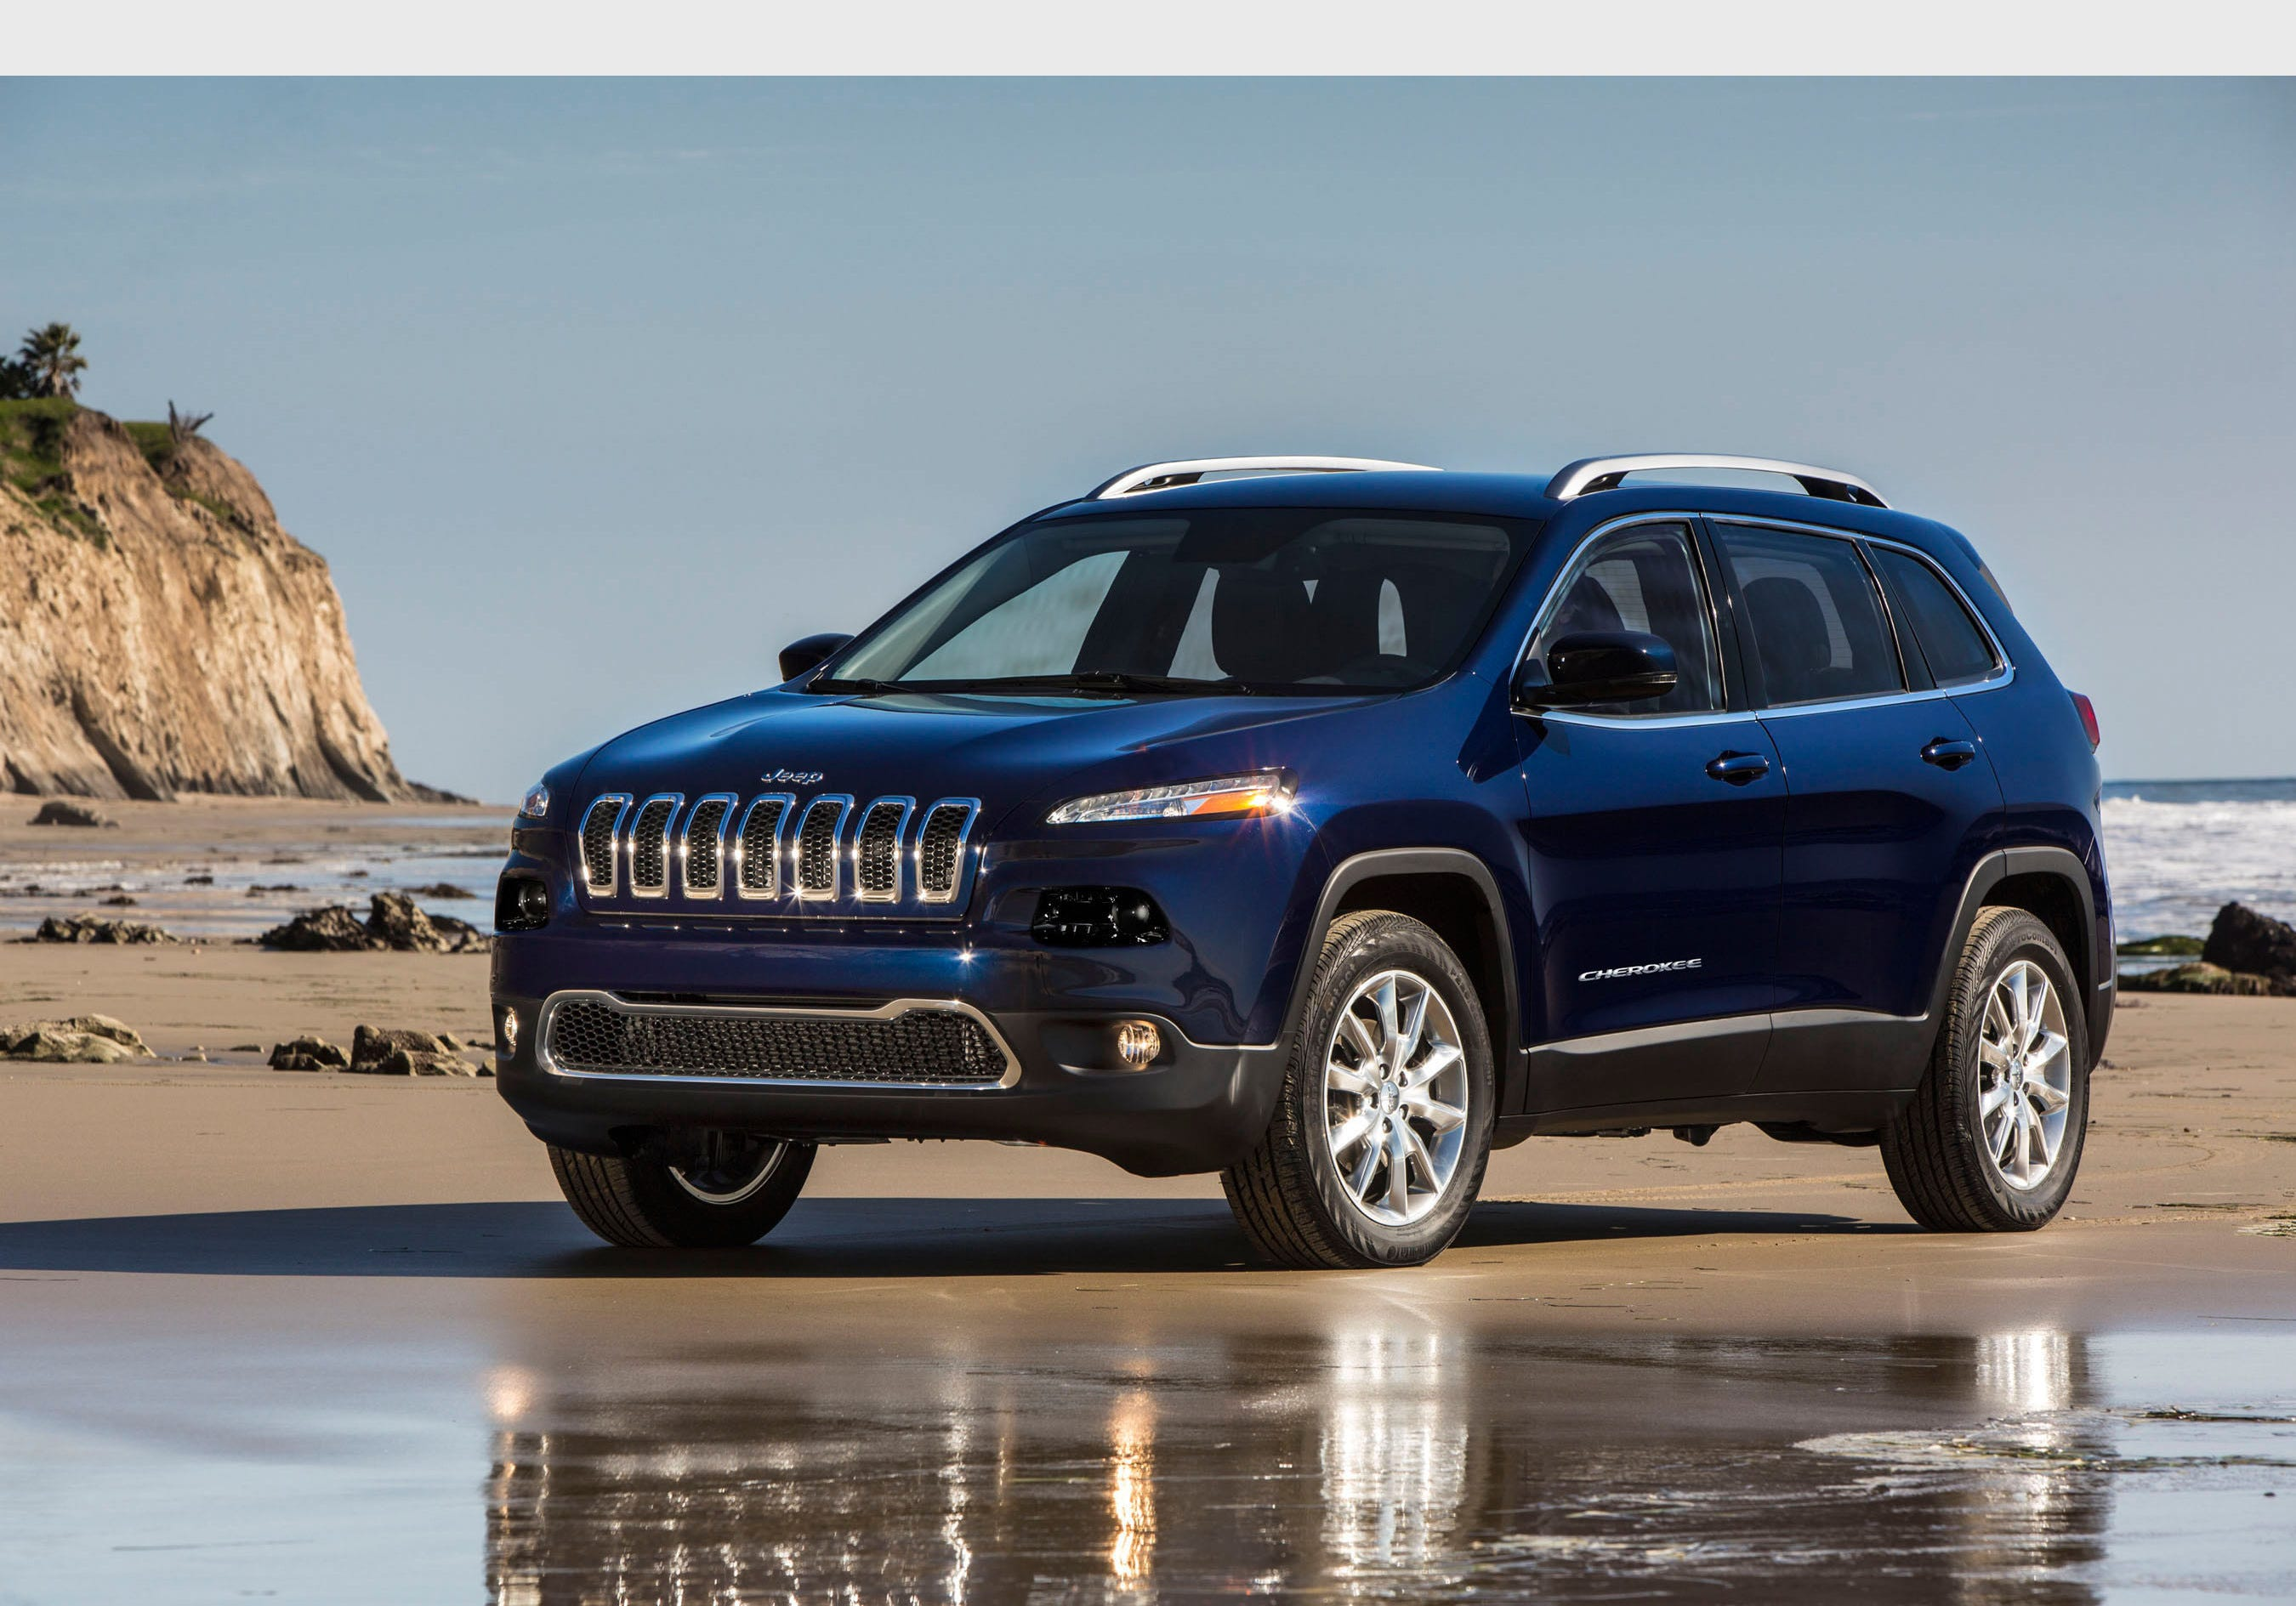 636047974197420341 JeepCherokee14 fiat chrysler recalls 323,000 vehicles over wiring issue 96 Jeep Cherokee Wiring Diagram at gsmx.co